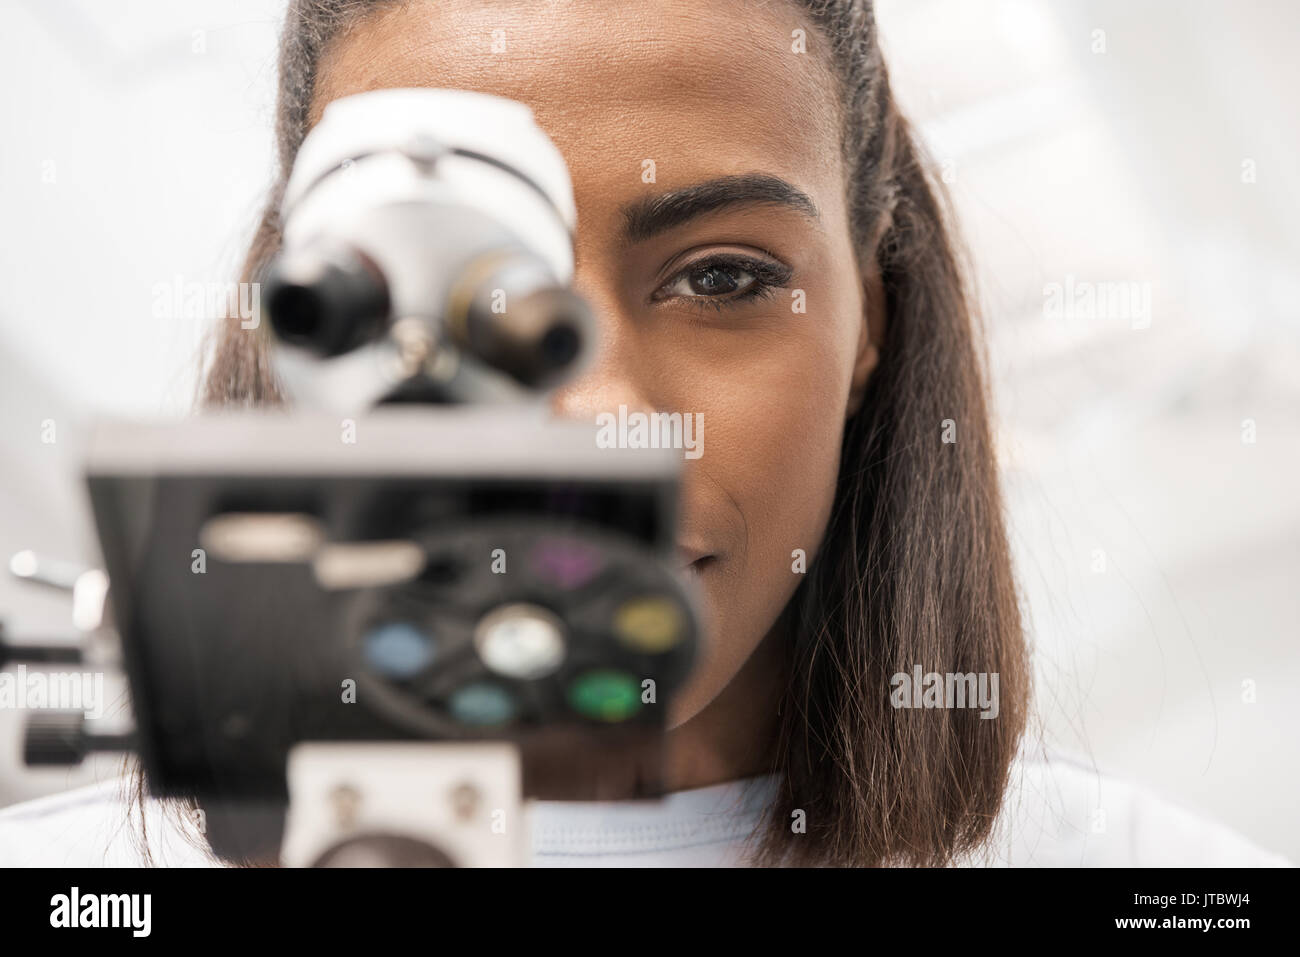 partial view of woman scientist looking through microscope on reagents in laboratory   - Stock Image